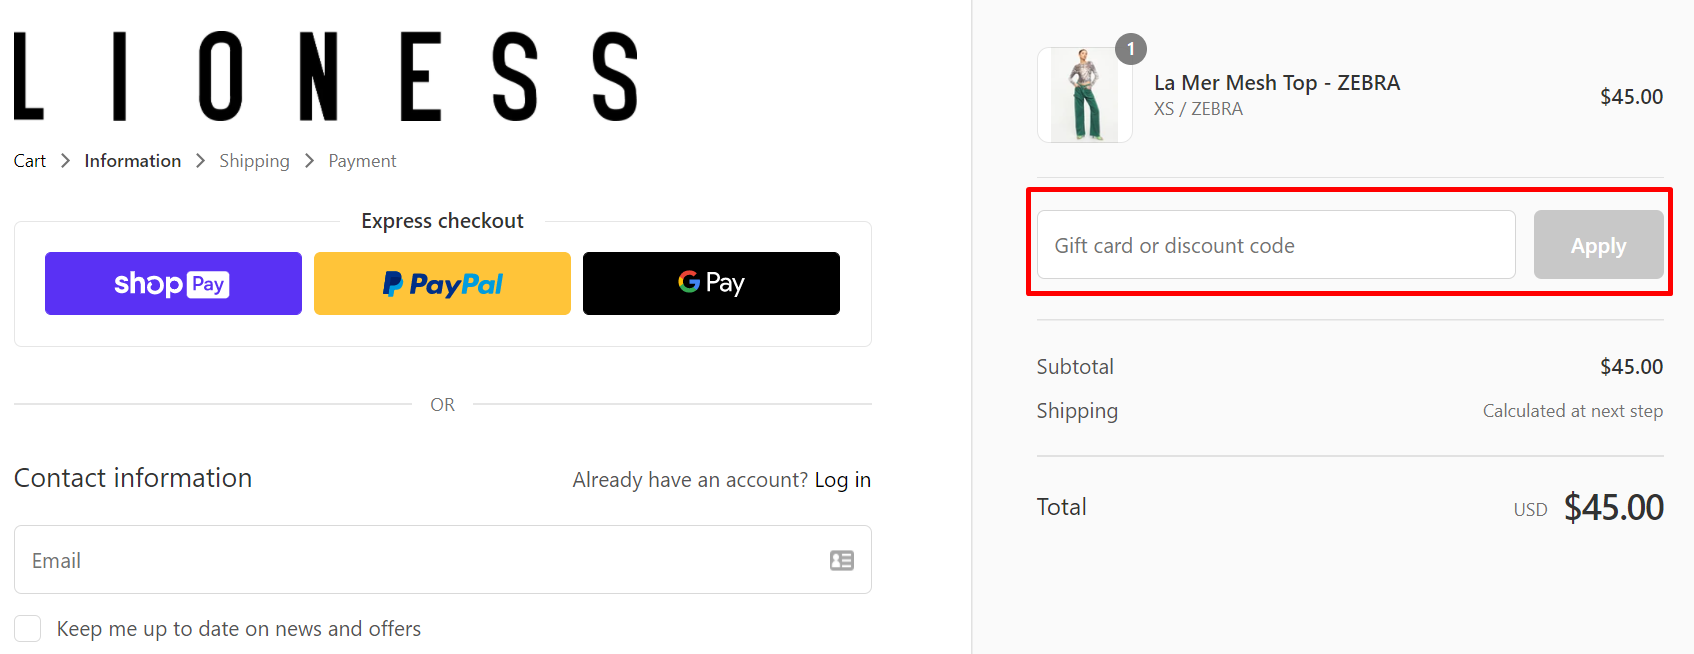 How do I use my Lioness discount code?